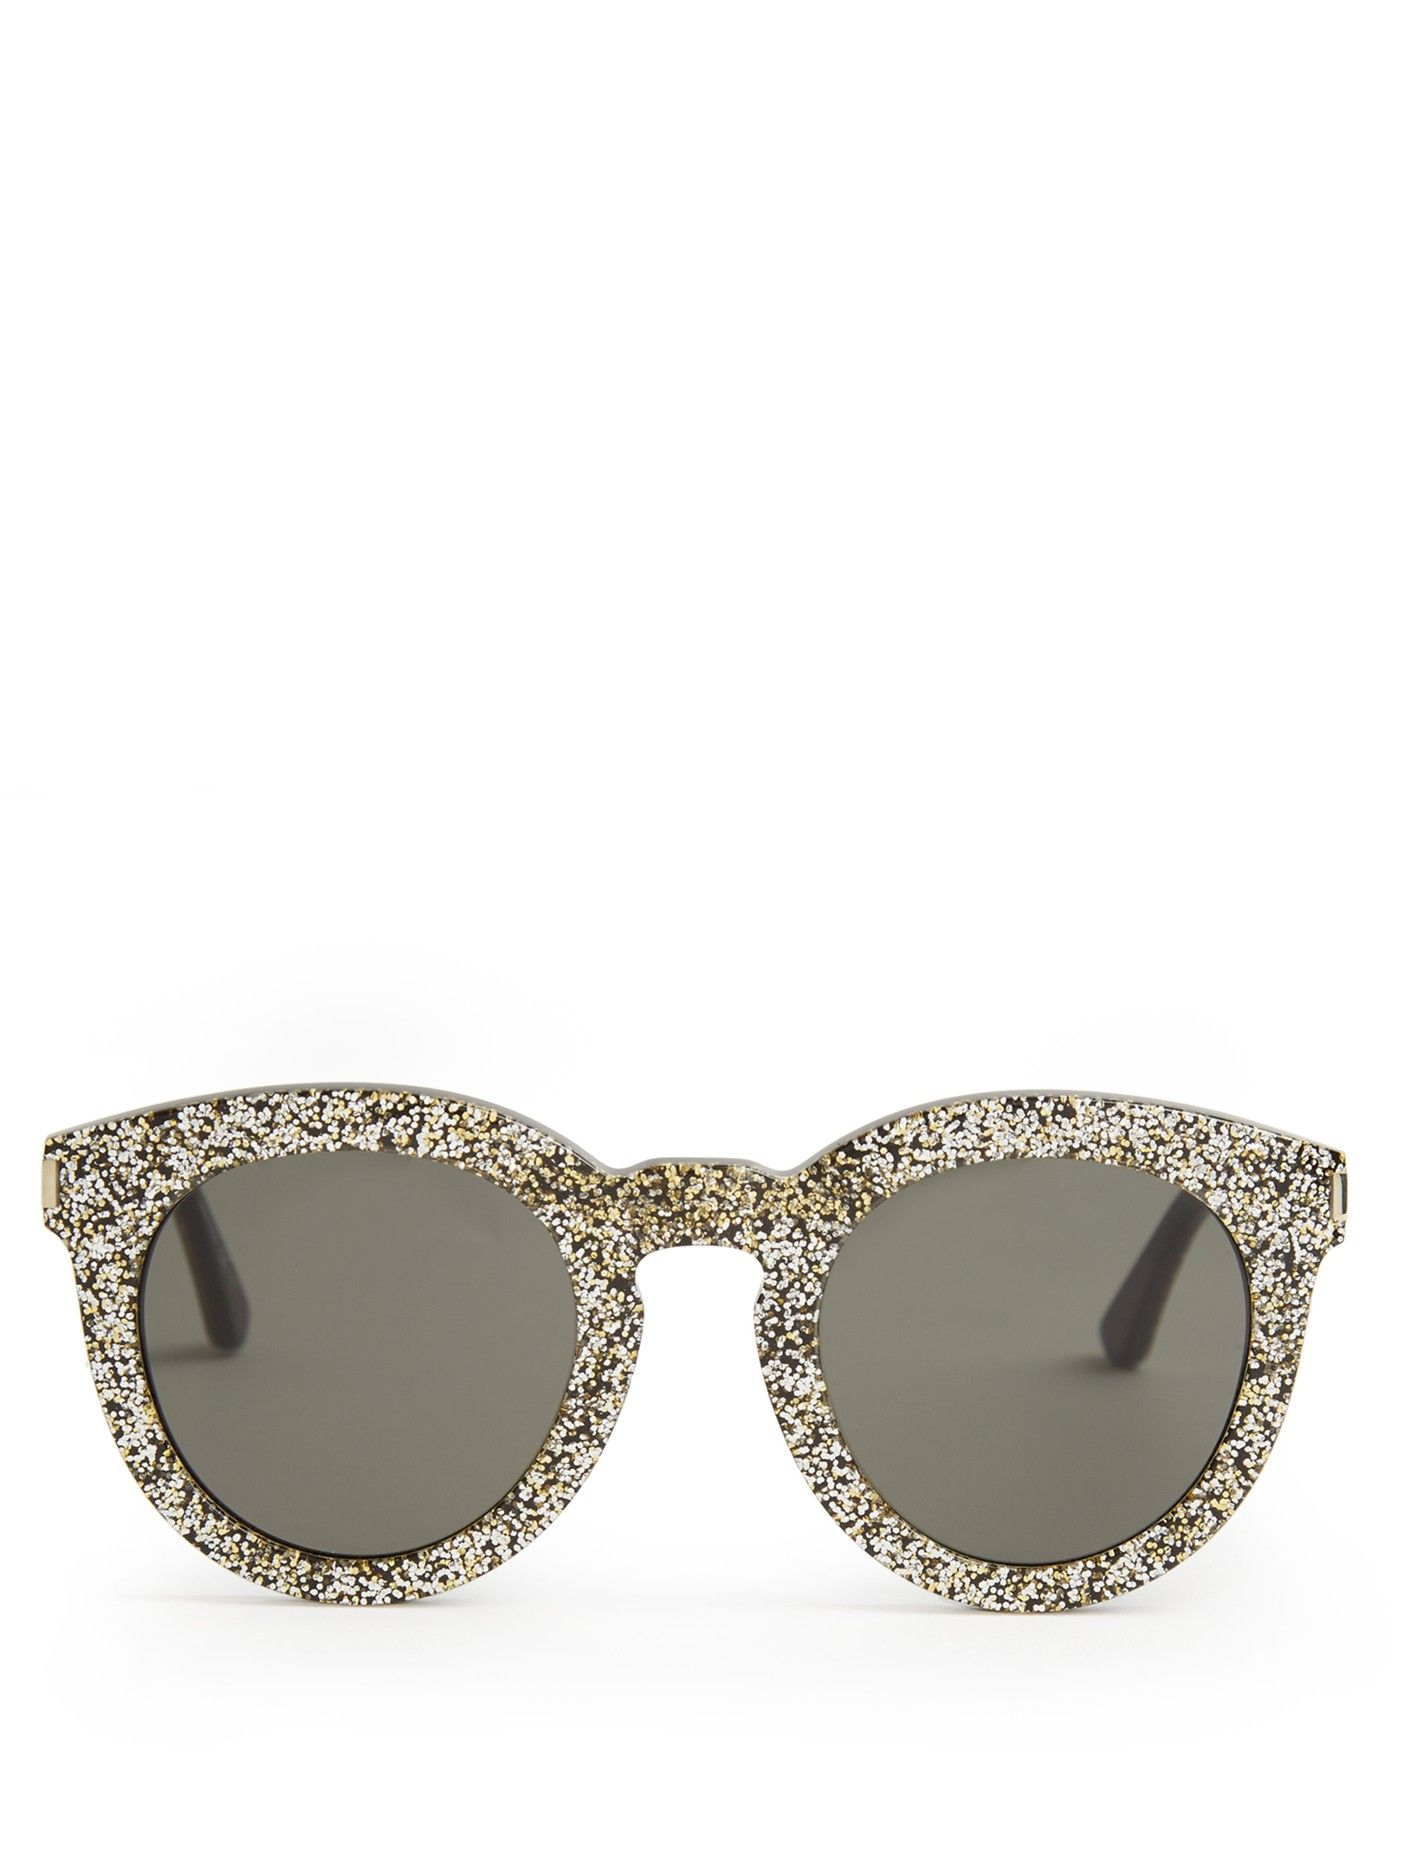 dec57b26736d Round-frame glitter sunglasses | Saint Laurent | frame designs ...